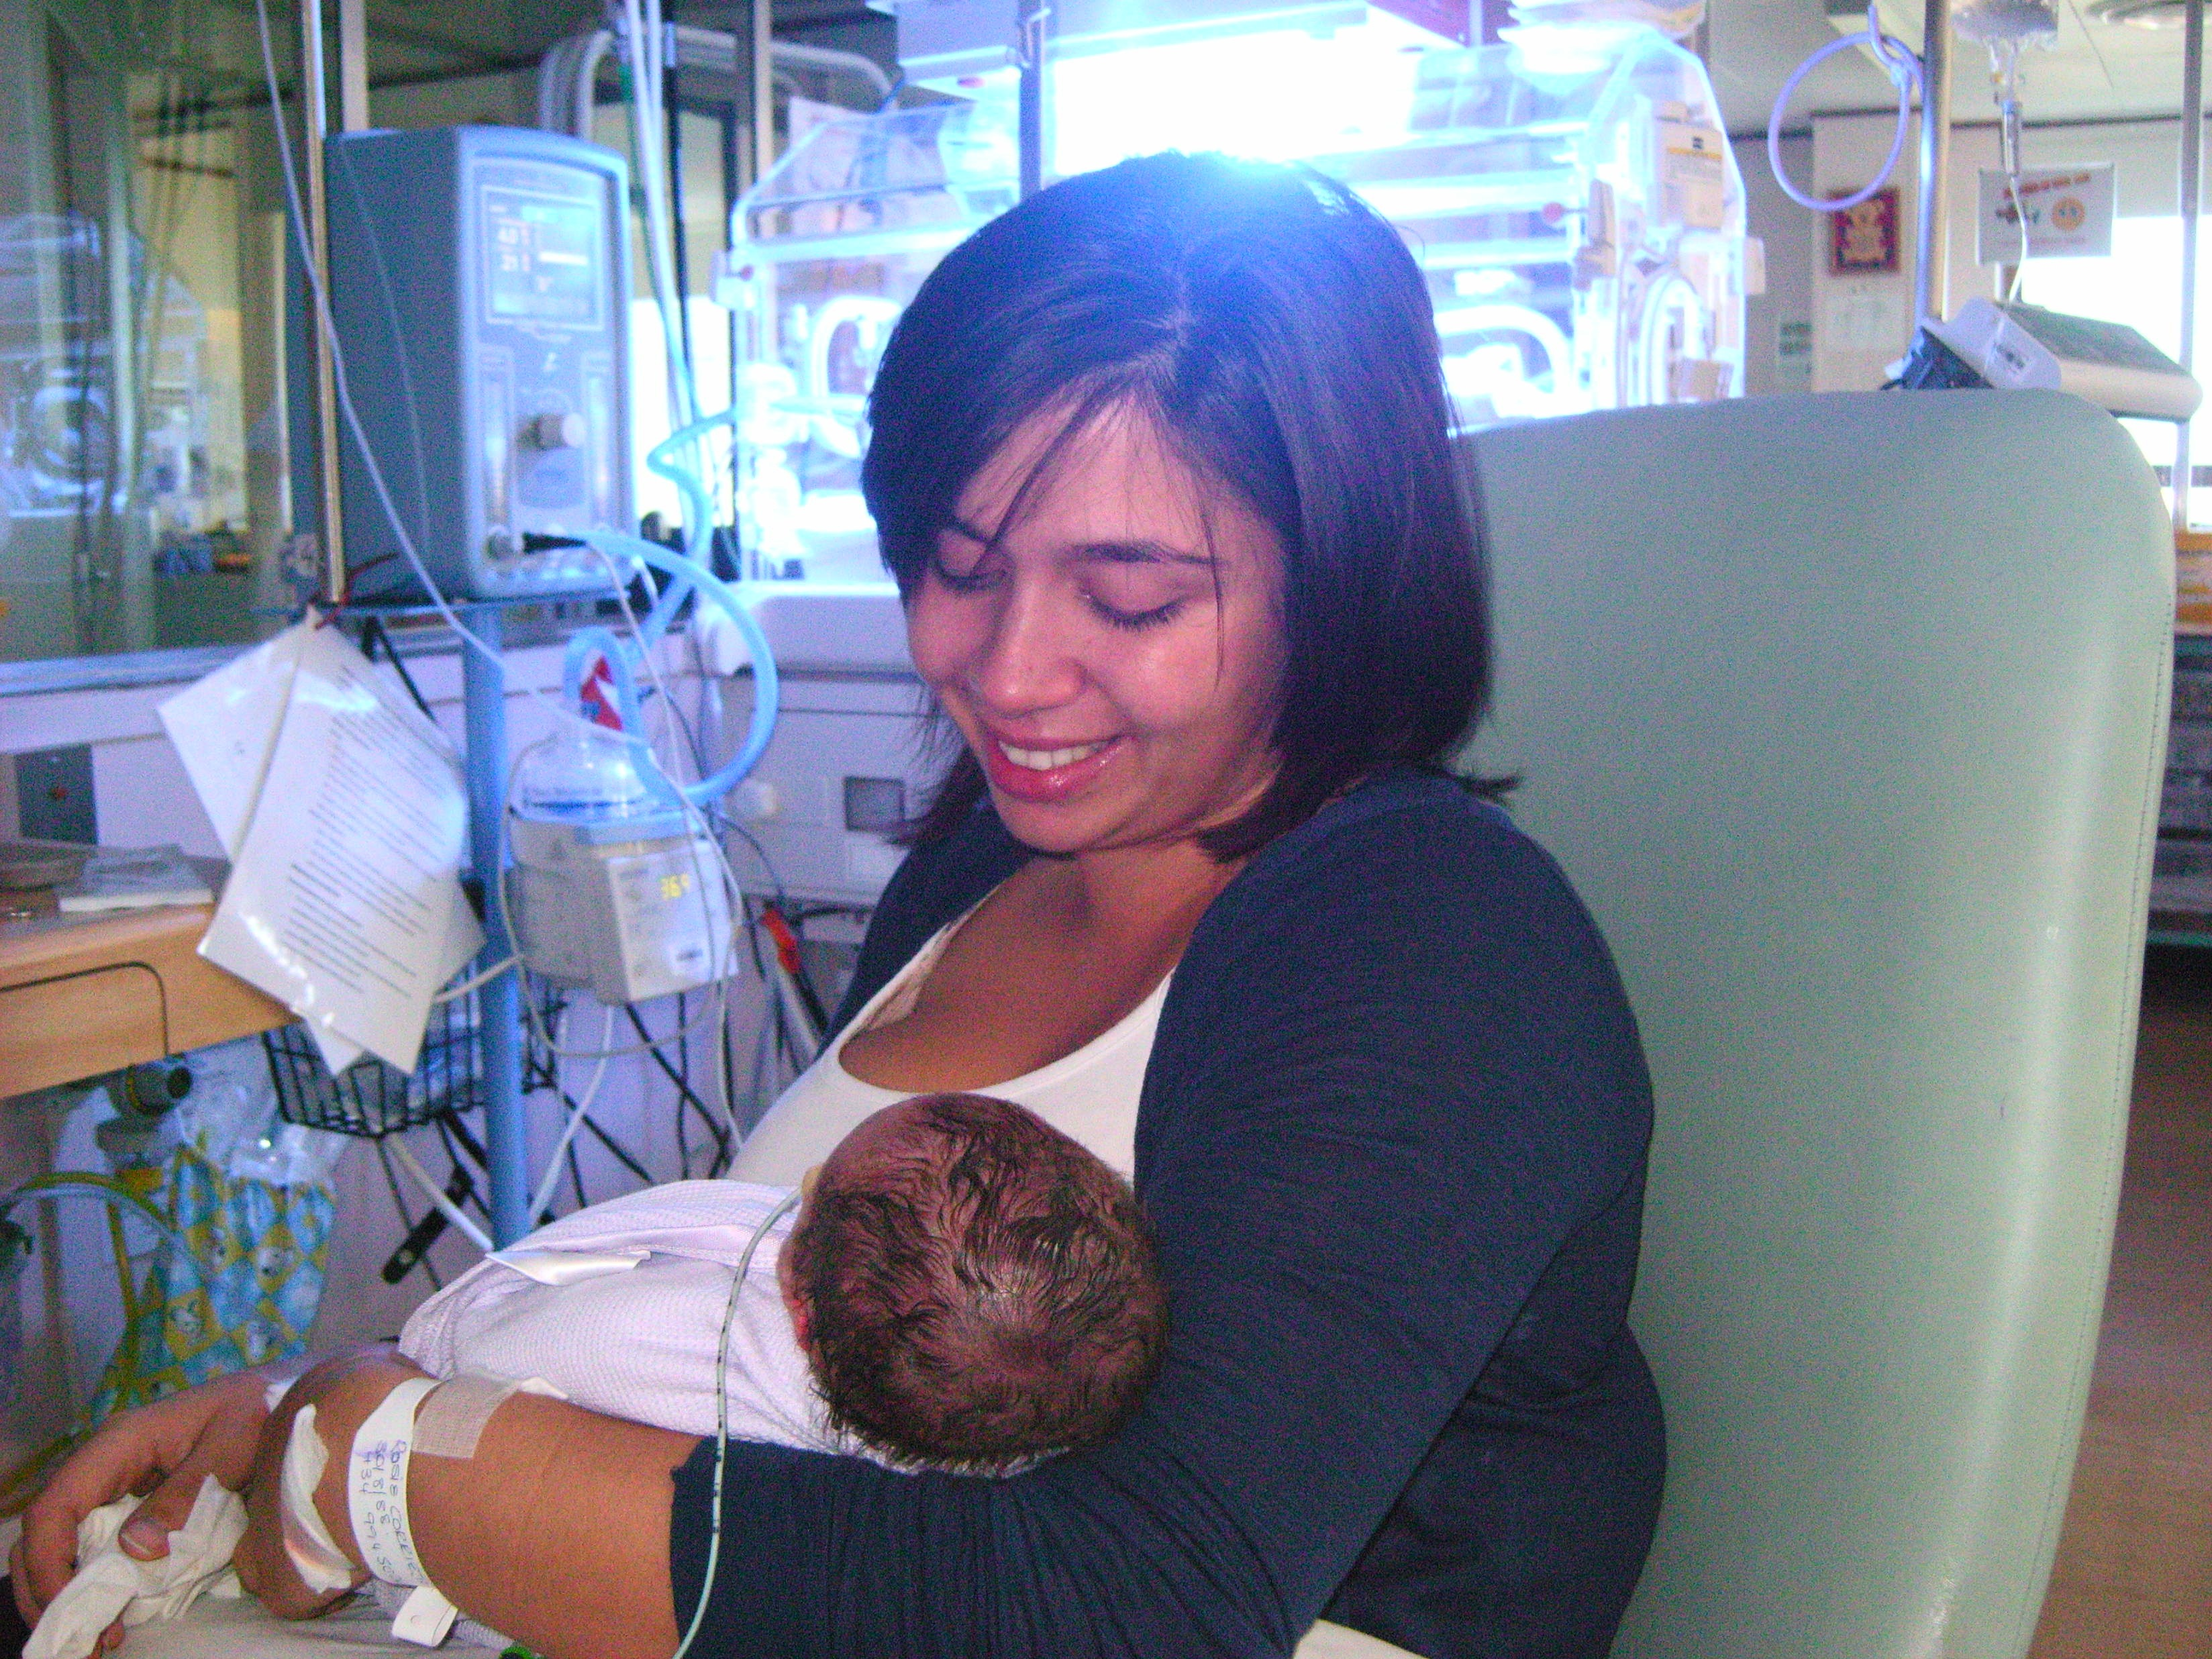 A quick cuddle in Neonatal care!